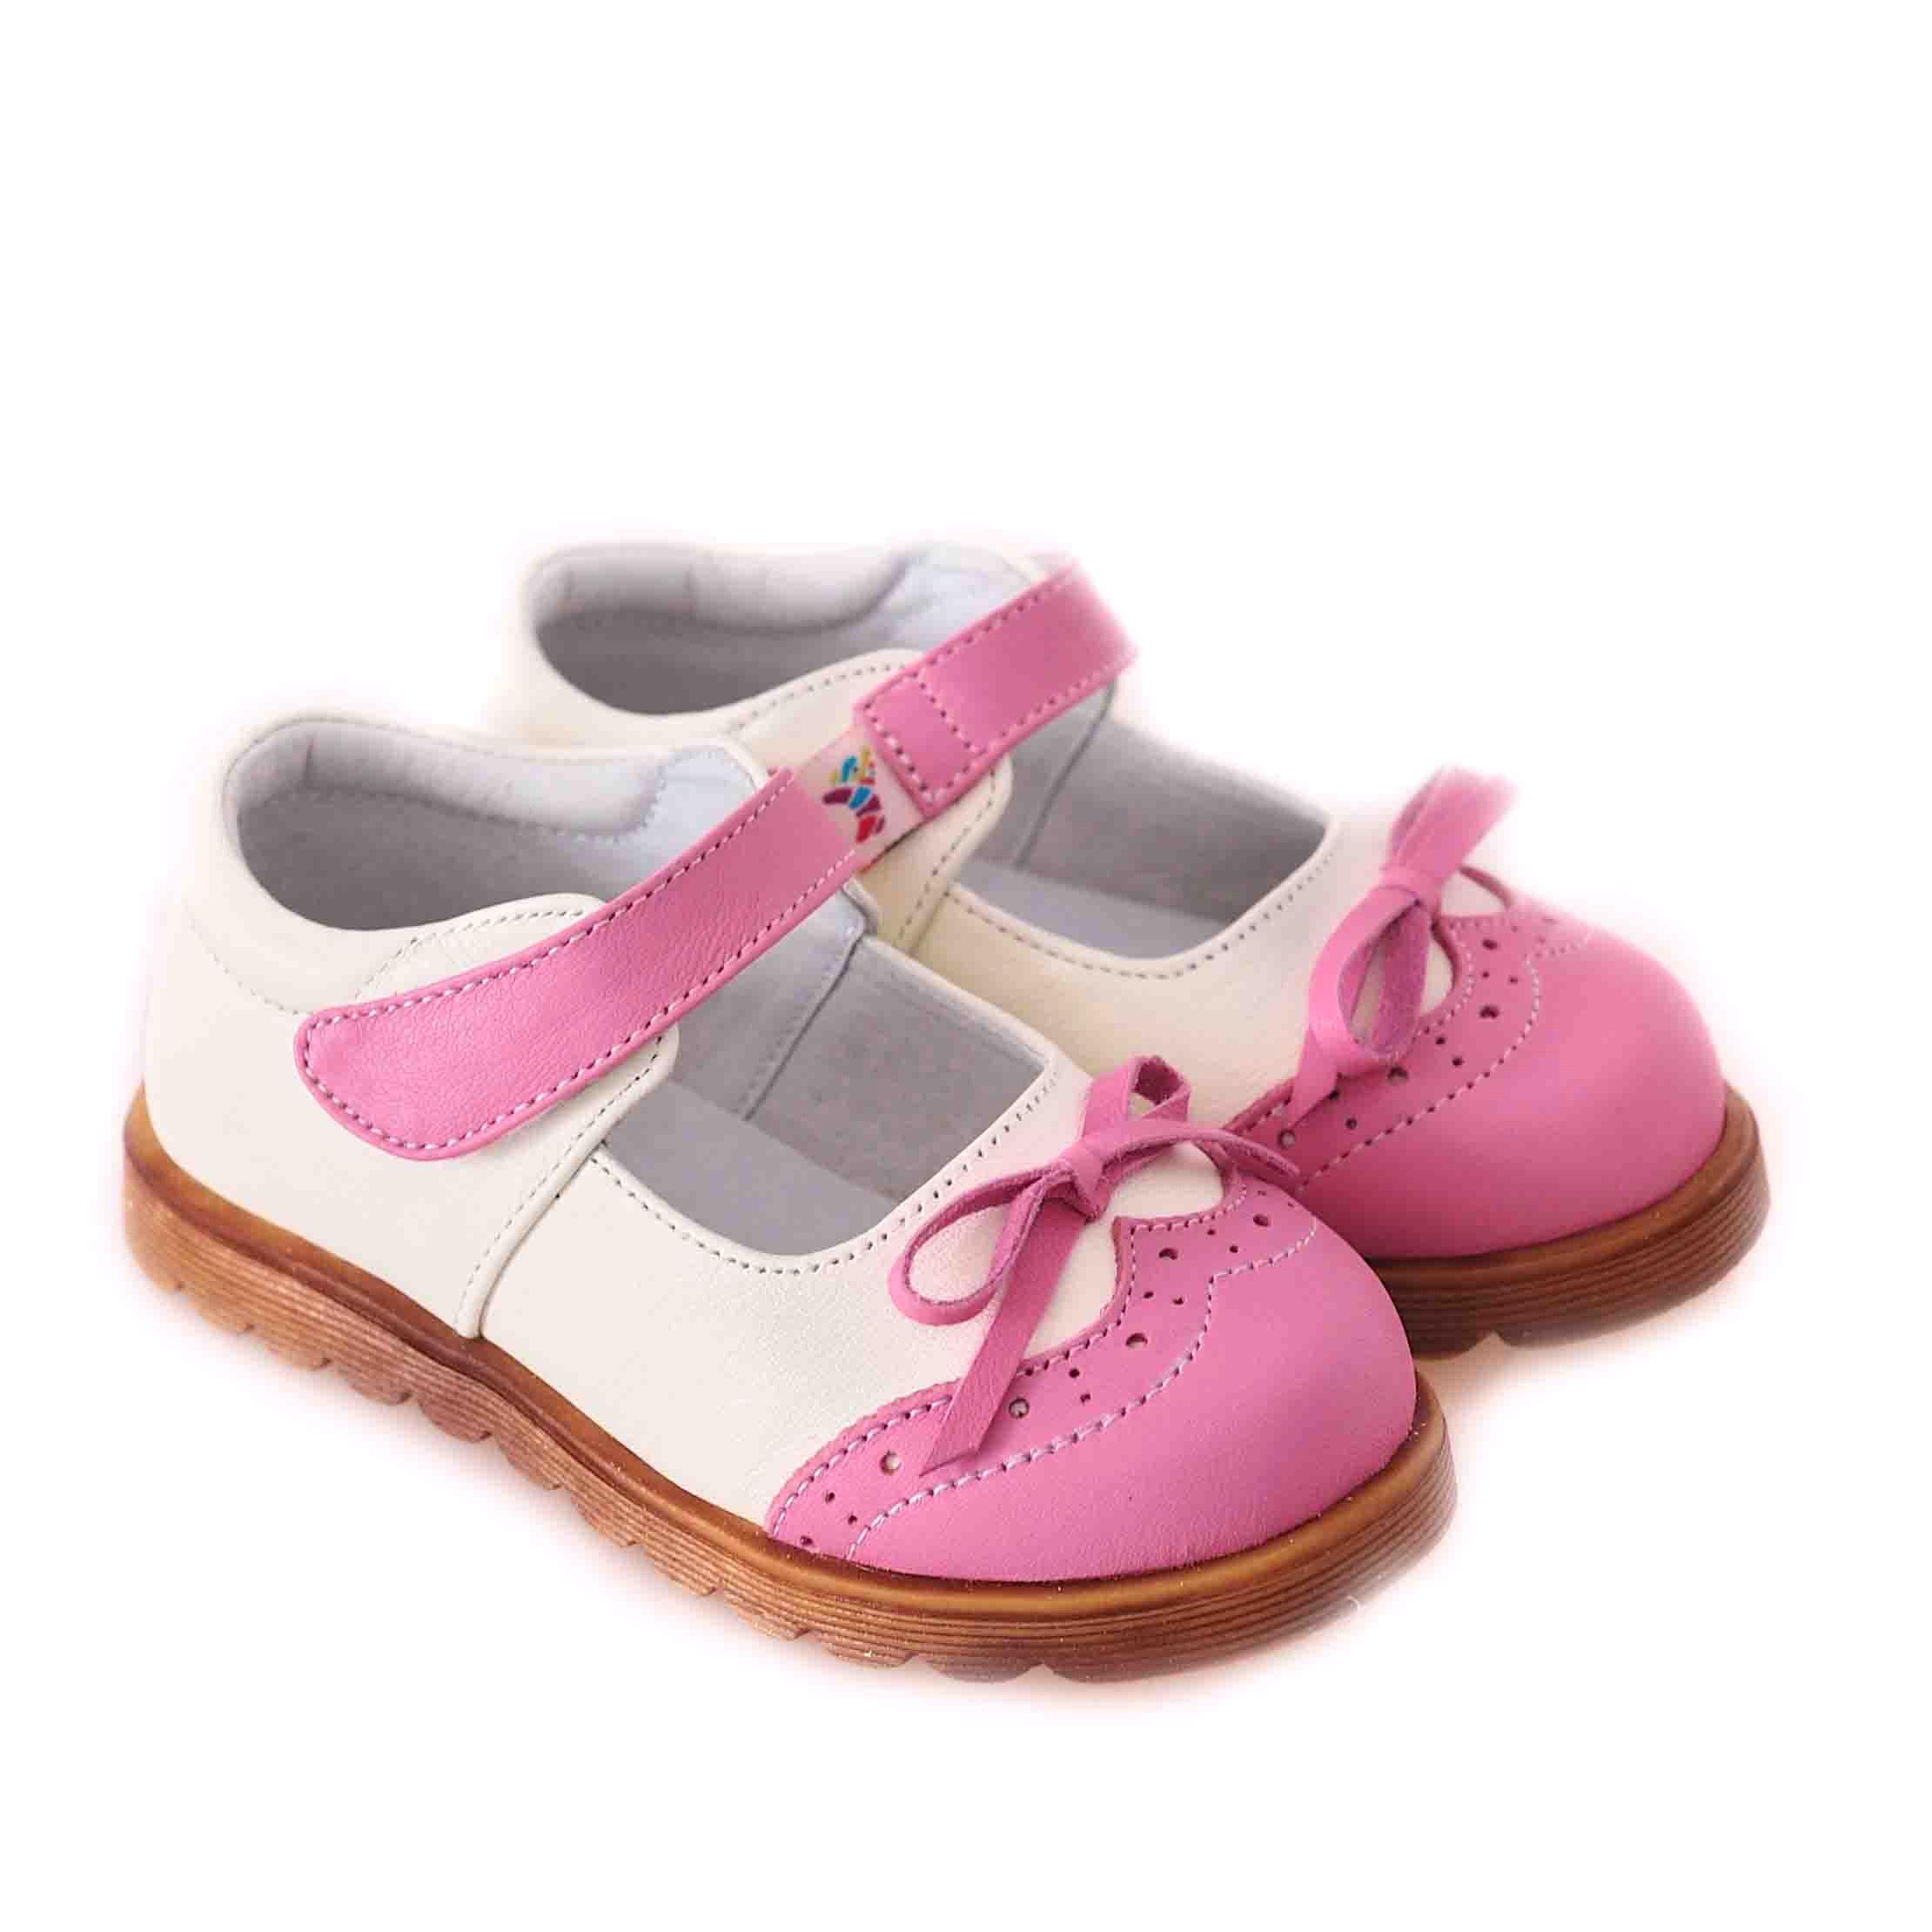 CAROCH Genuine Leather Kids Girl Shoes C 3301CP purchasing